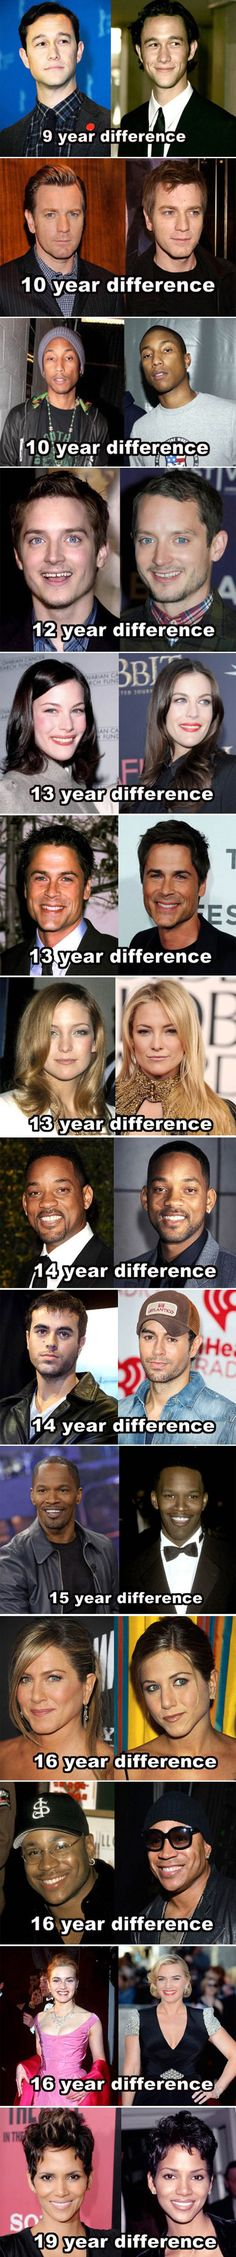 People who don't age... - The Meta Picture